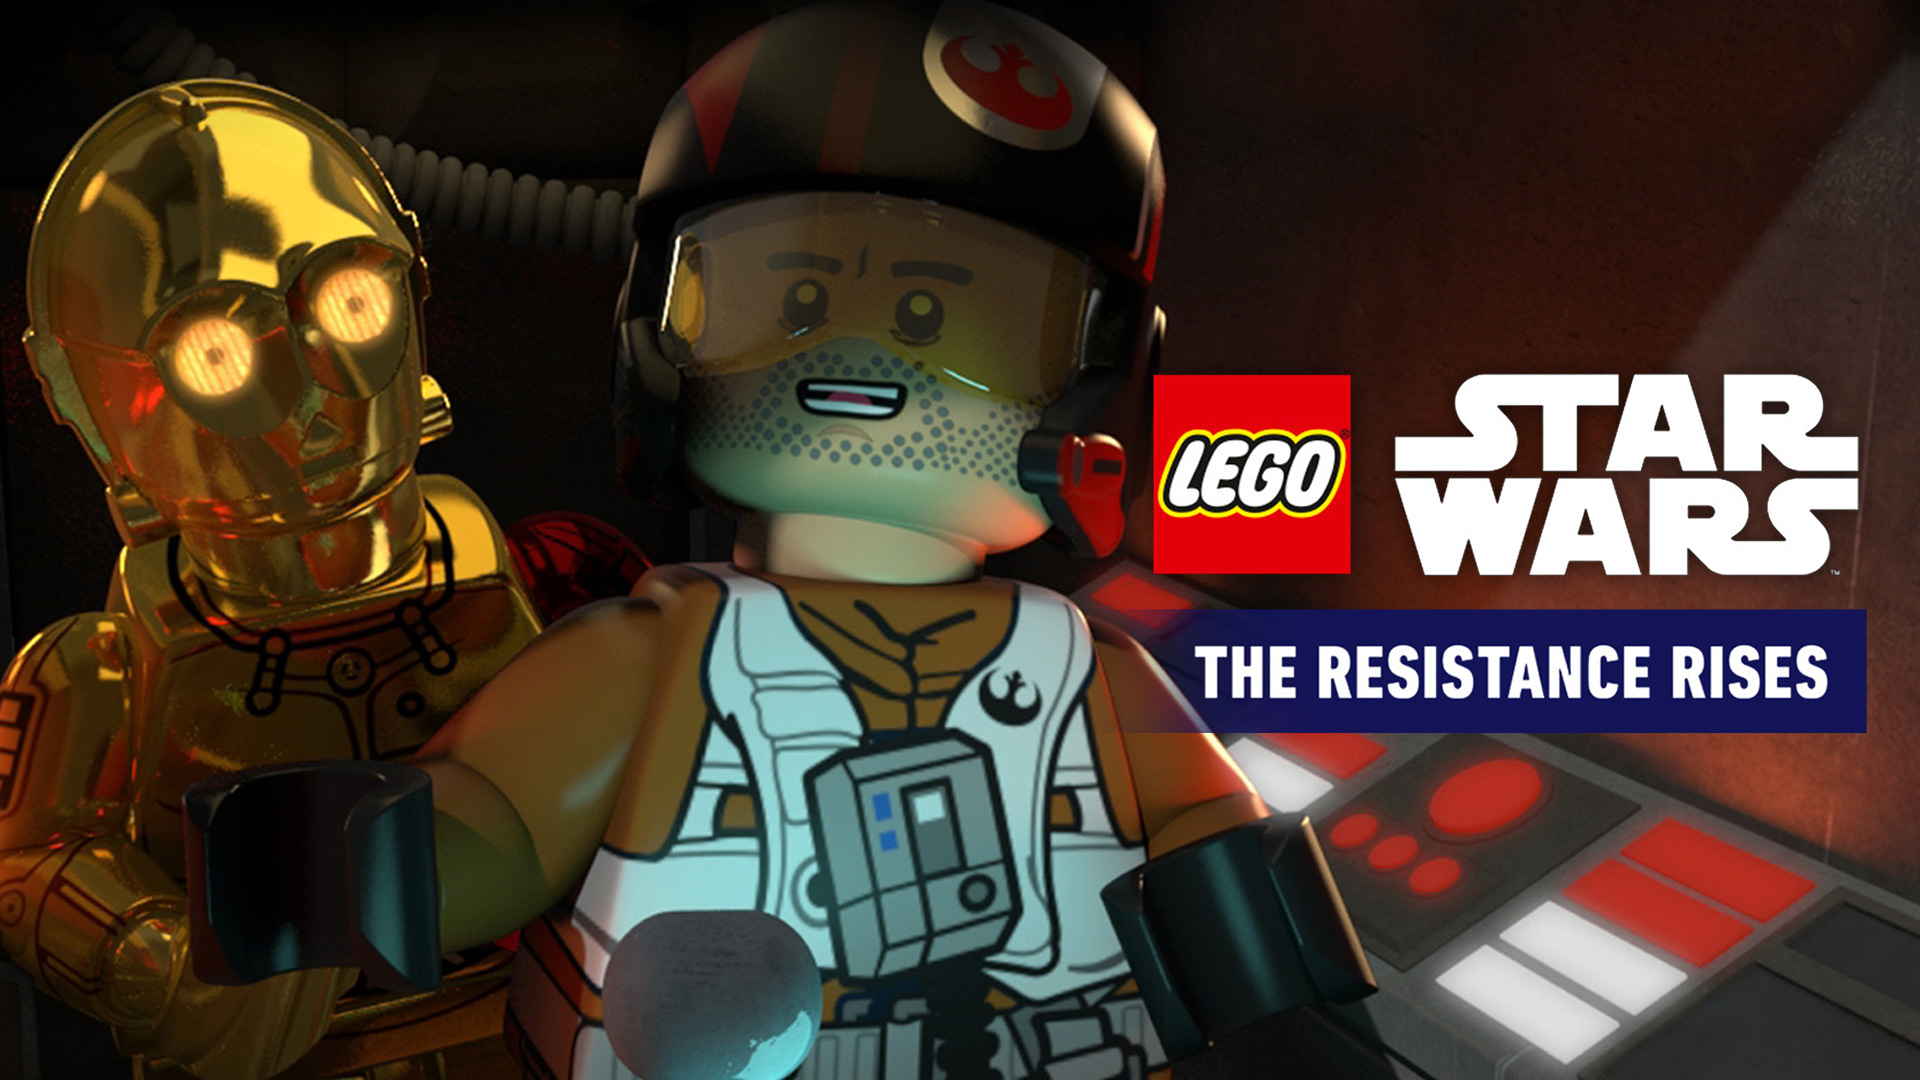 LEGO Star Wars: The Resistance Rises Season 1